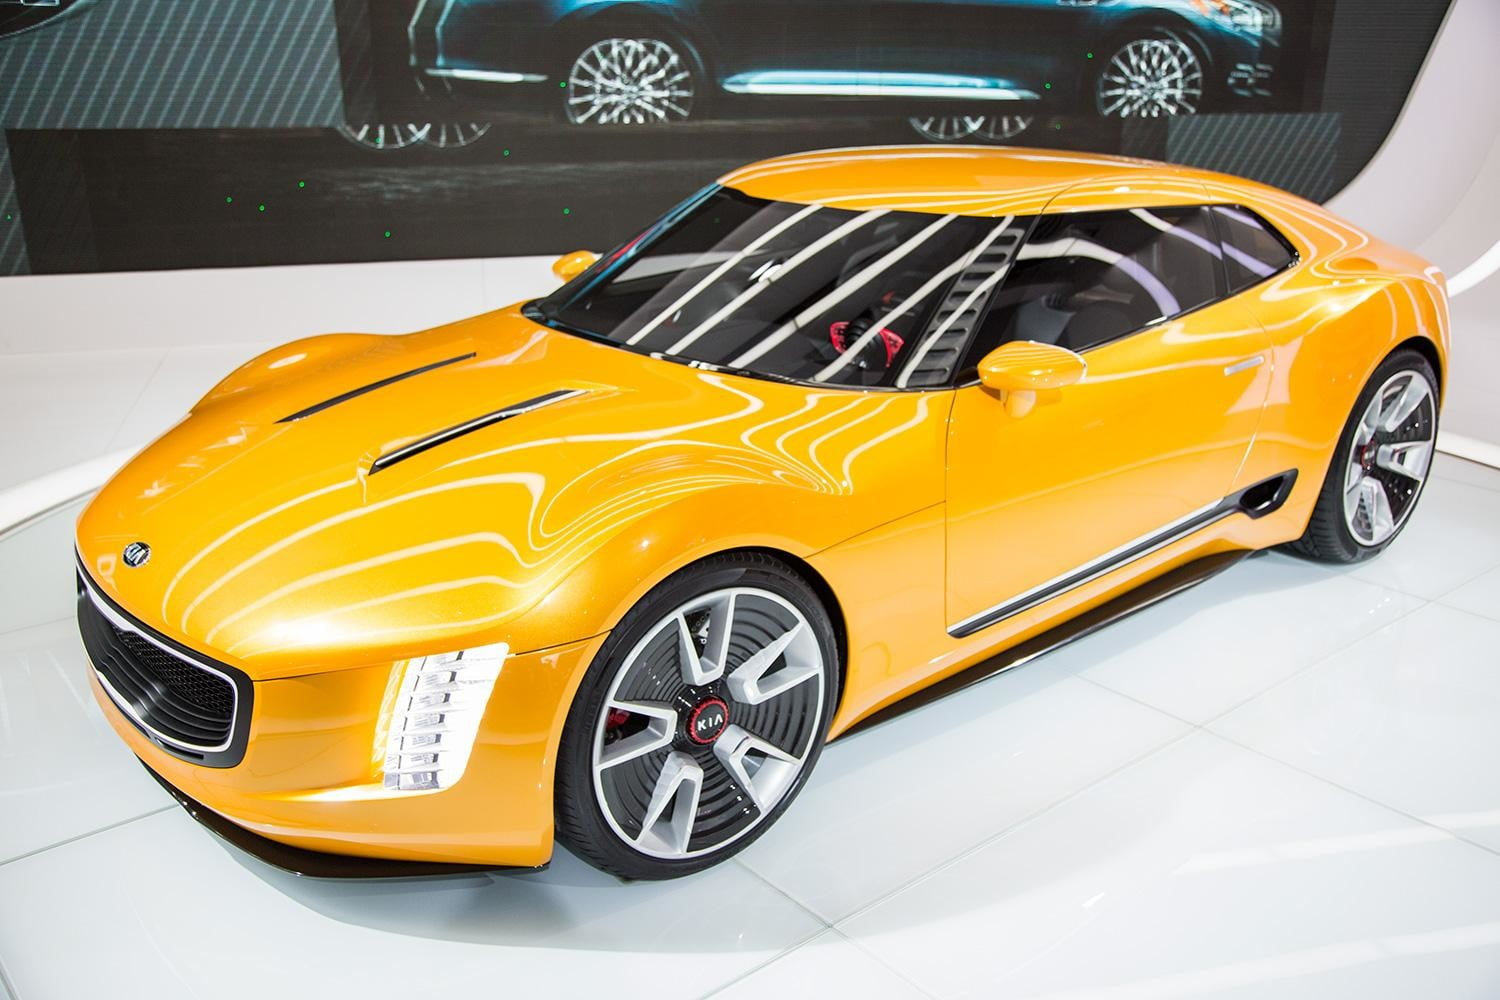 Kia Gt4 Stinger Concept Full Specs Photos And Performance Digital Trends